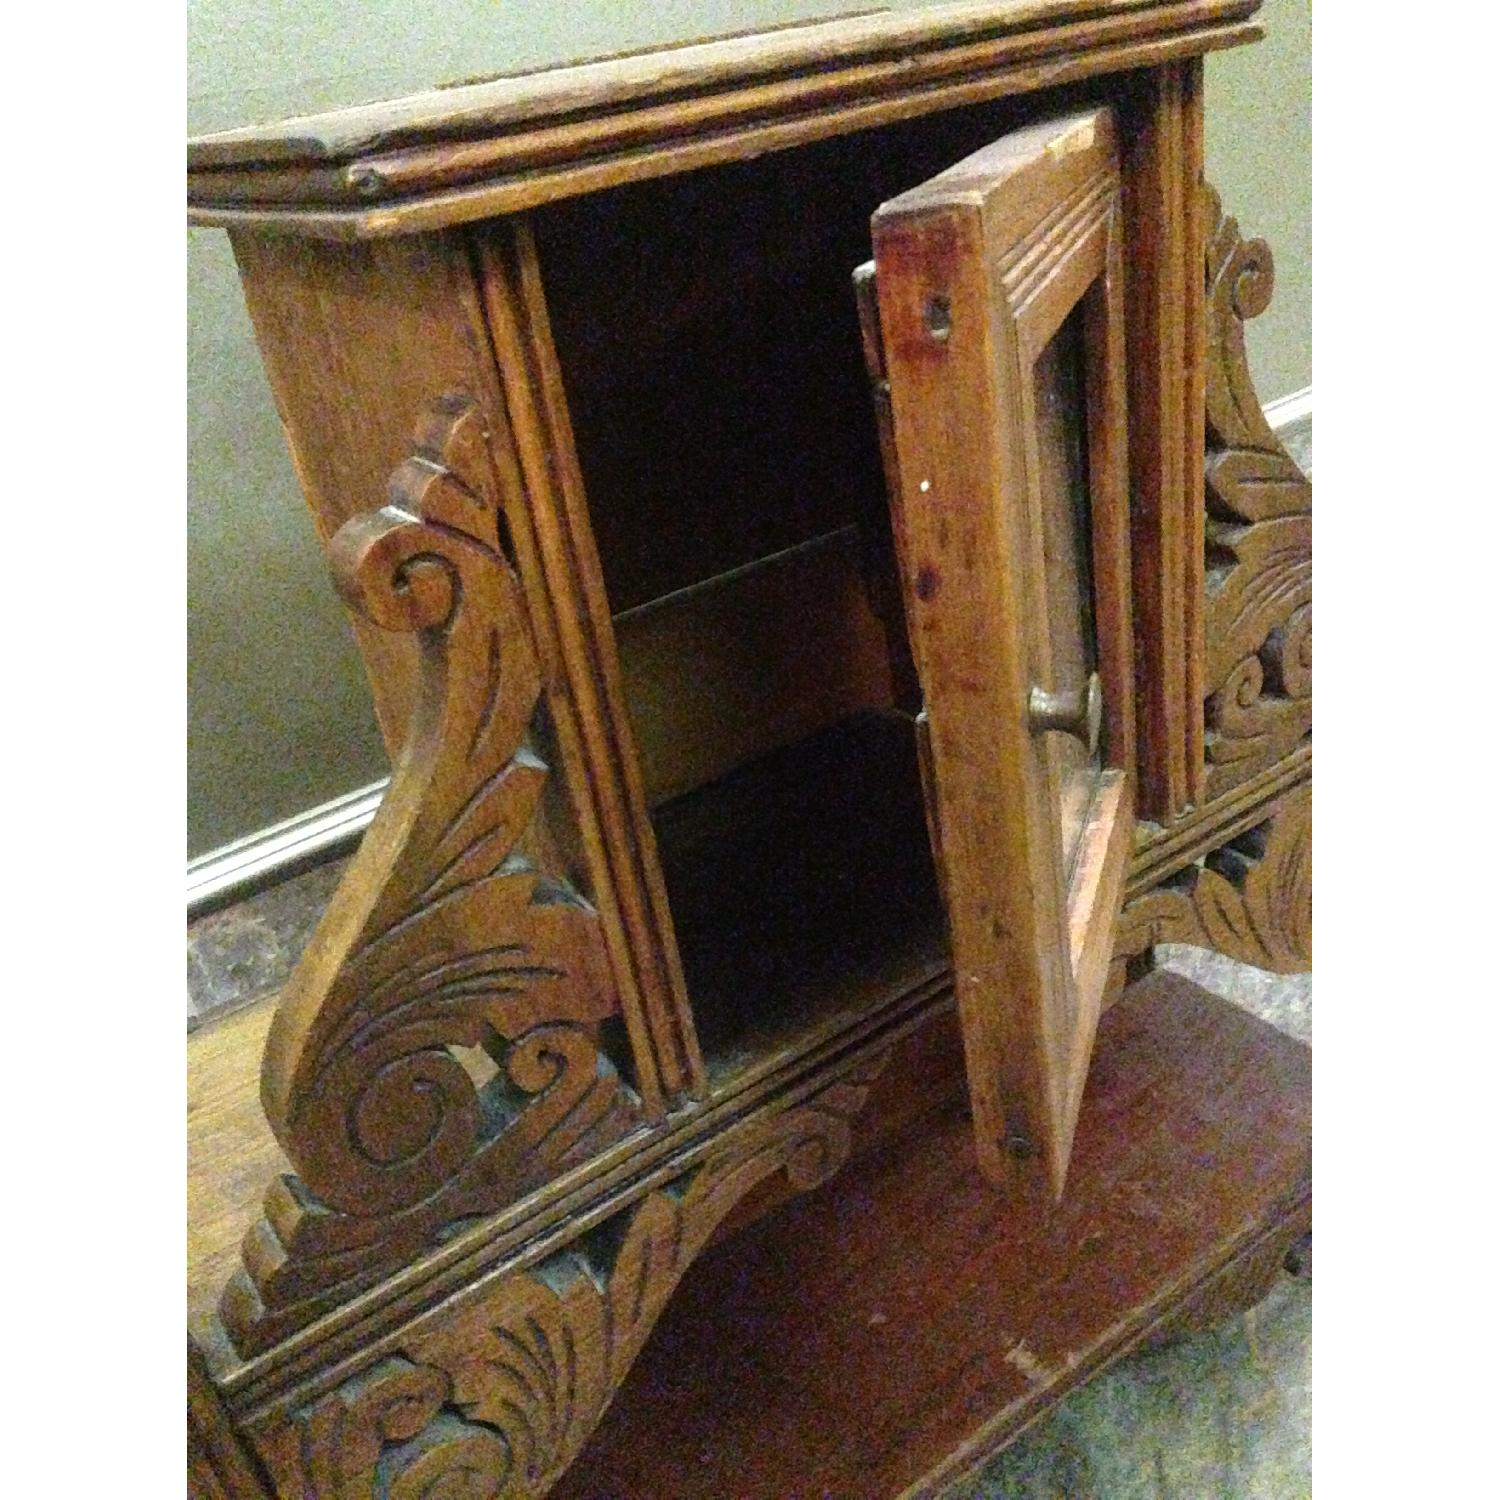 Antique Hand Crafted Wall Cabinet/Display Shelf w/ Mirror - image-6